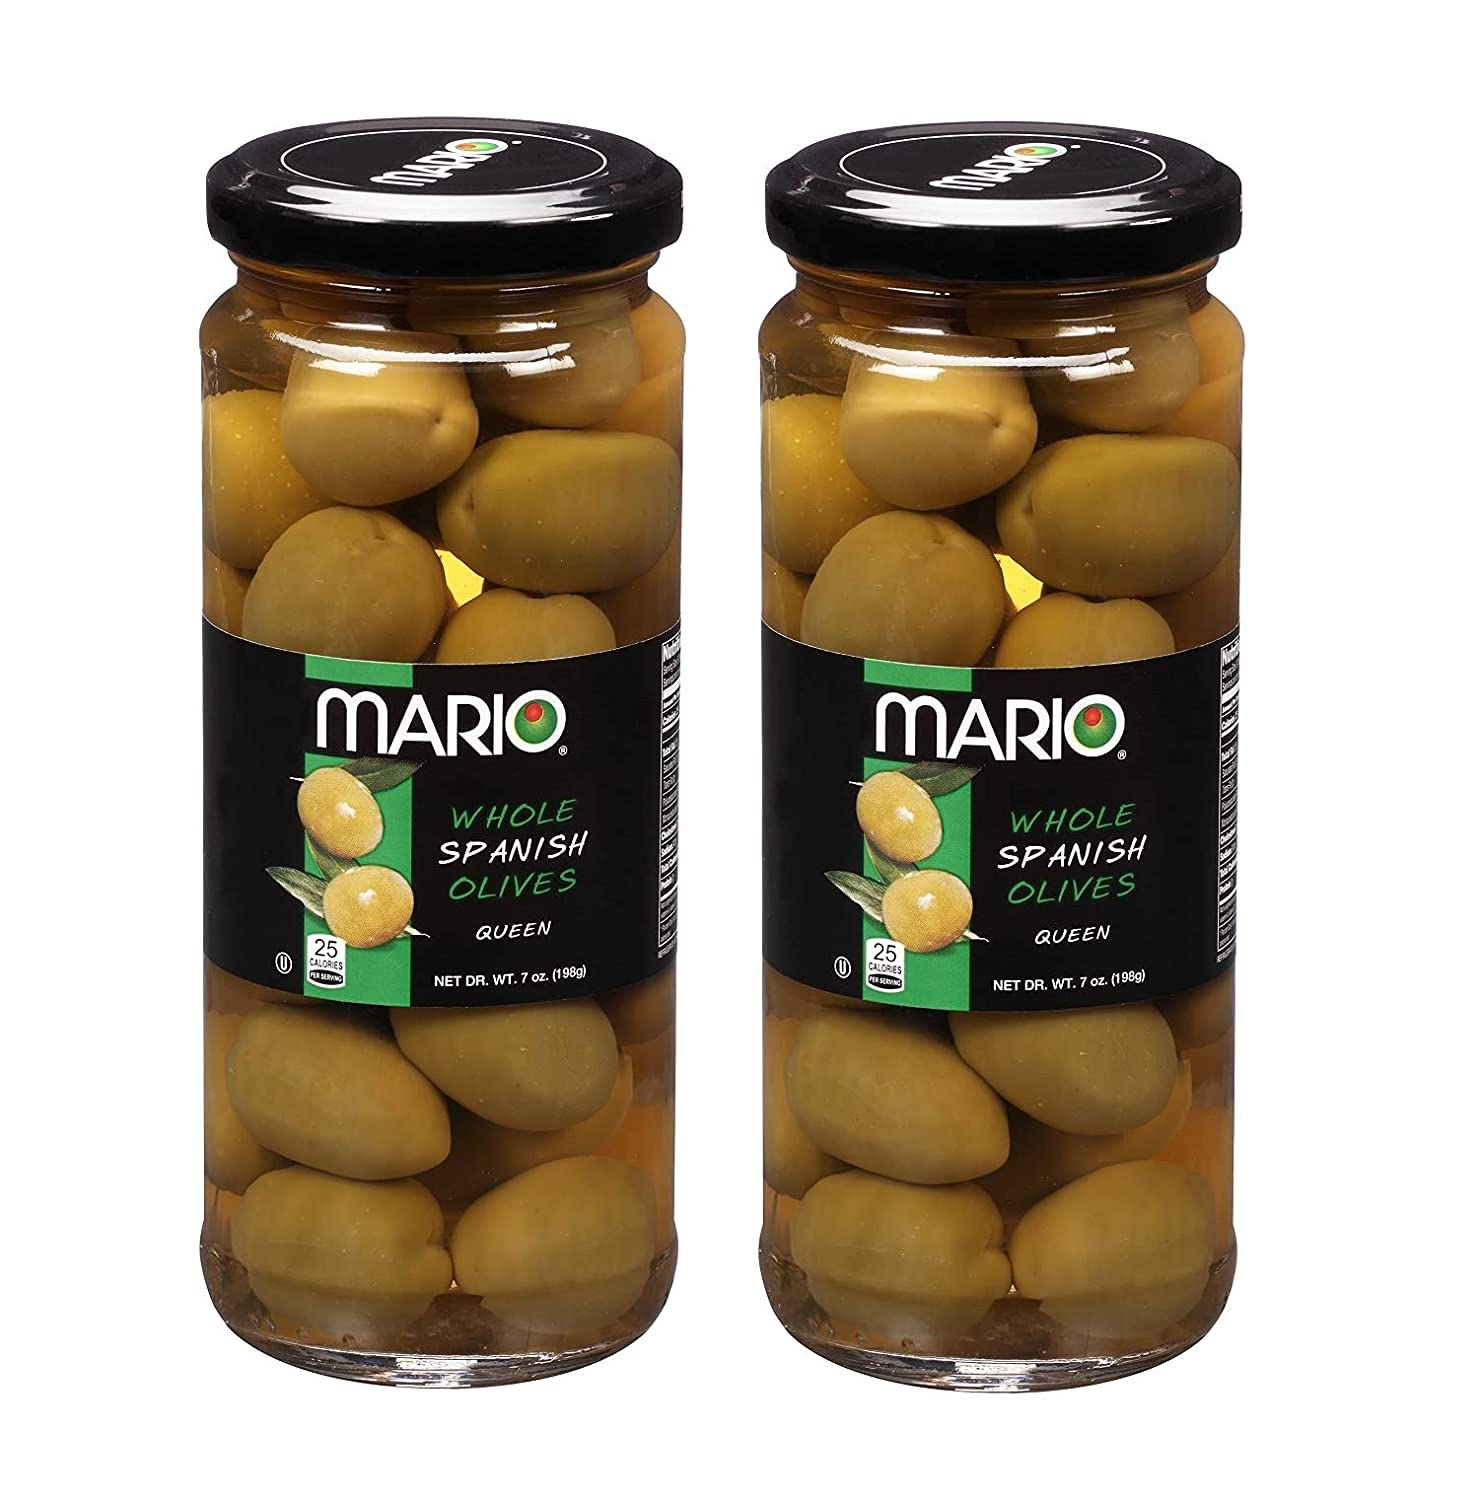 Sale Special Price MARIO Whole Spanish Queen Max 60% OFF Olives 2 Jars 198g each 7oz Glass